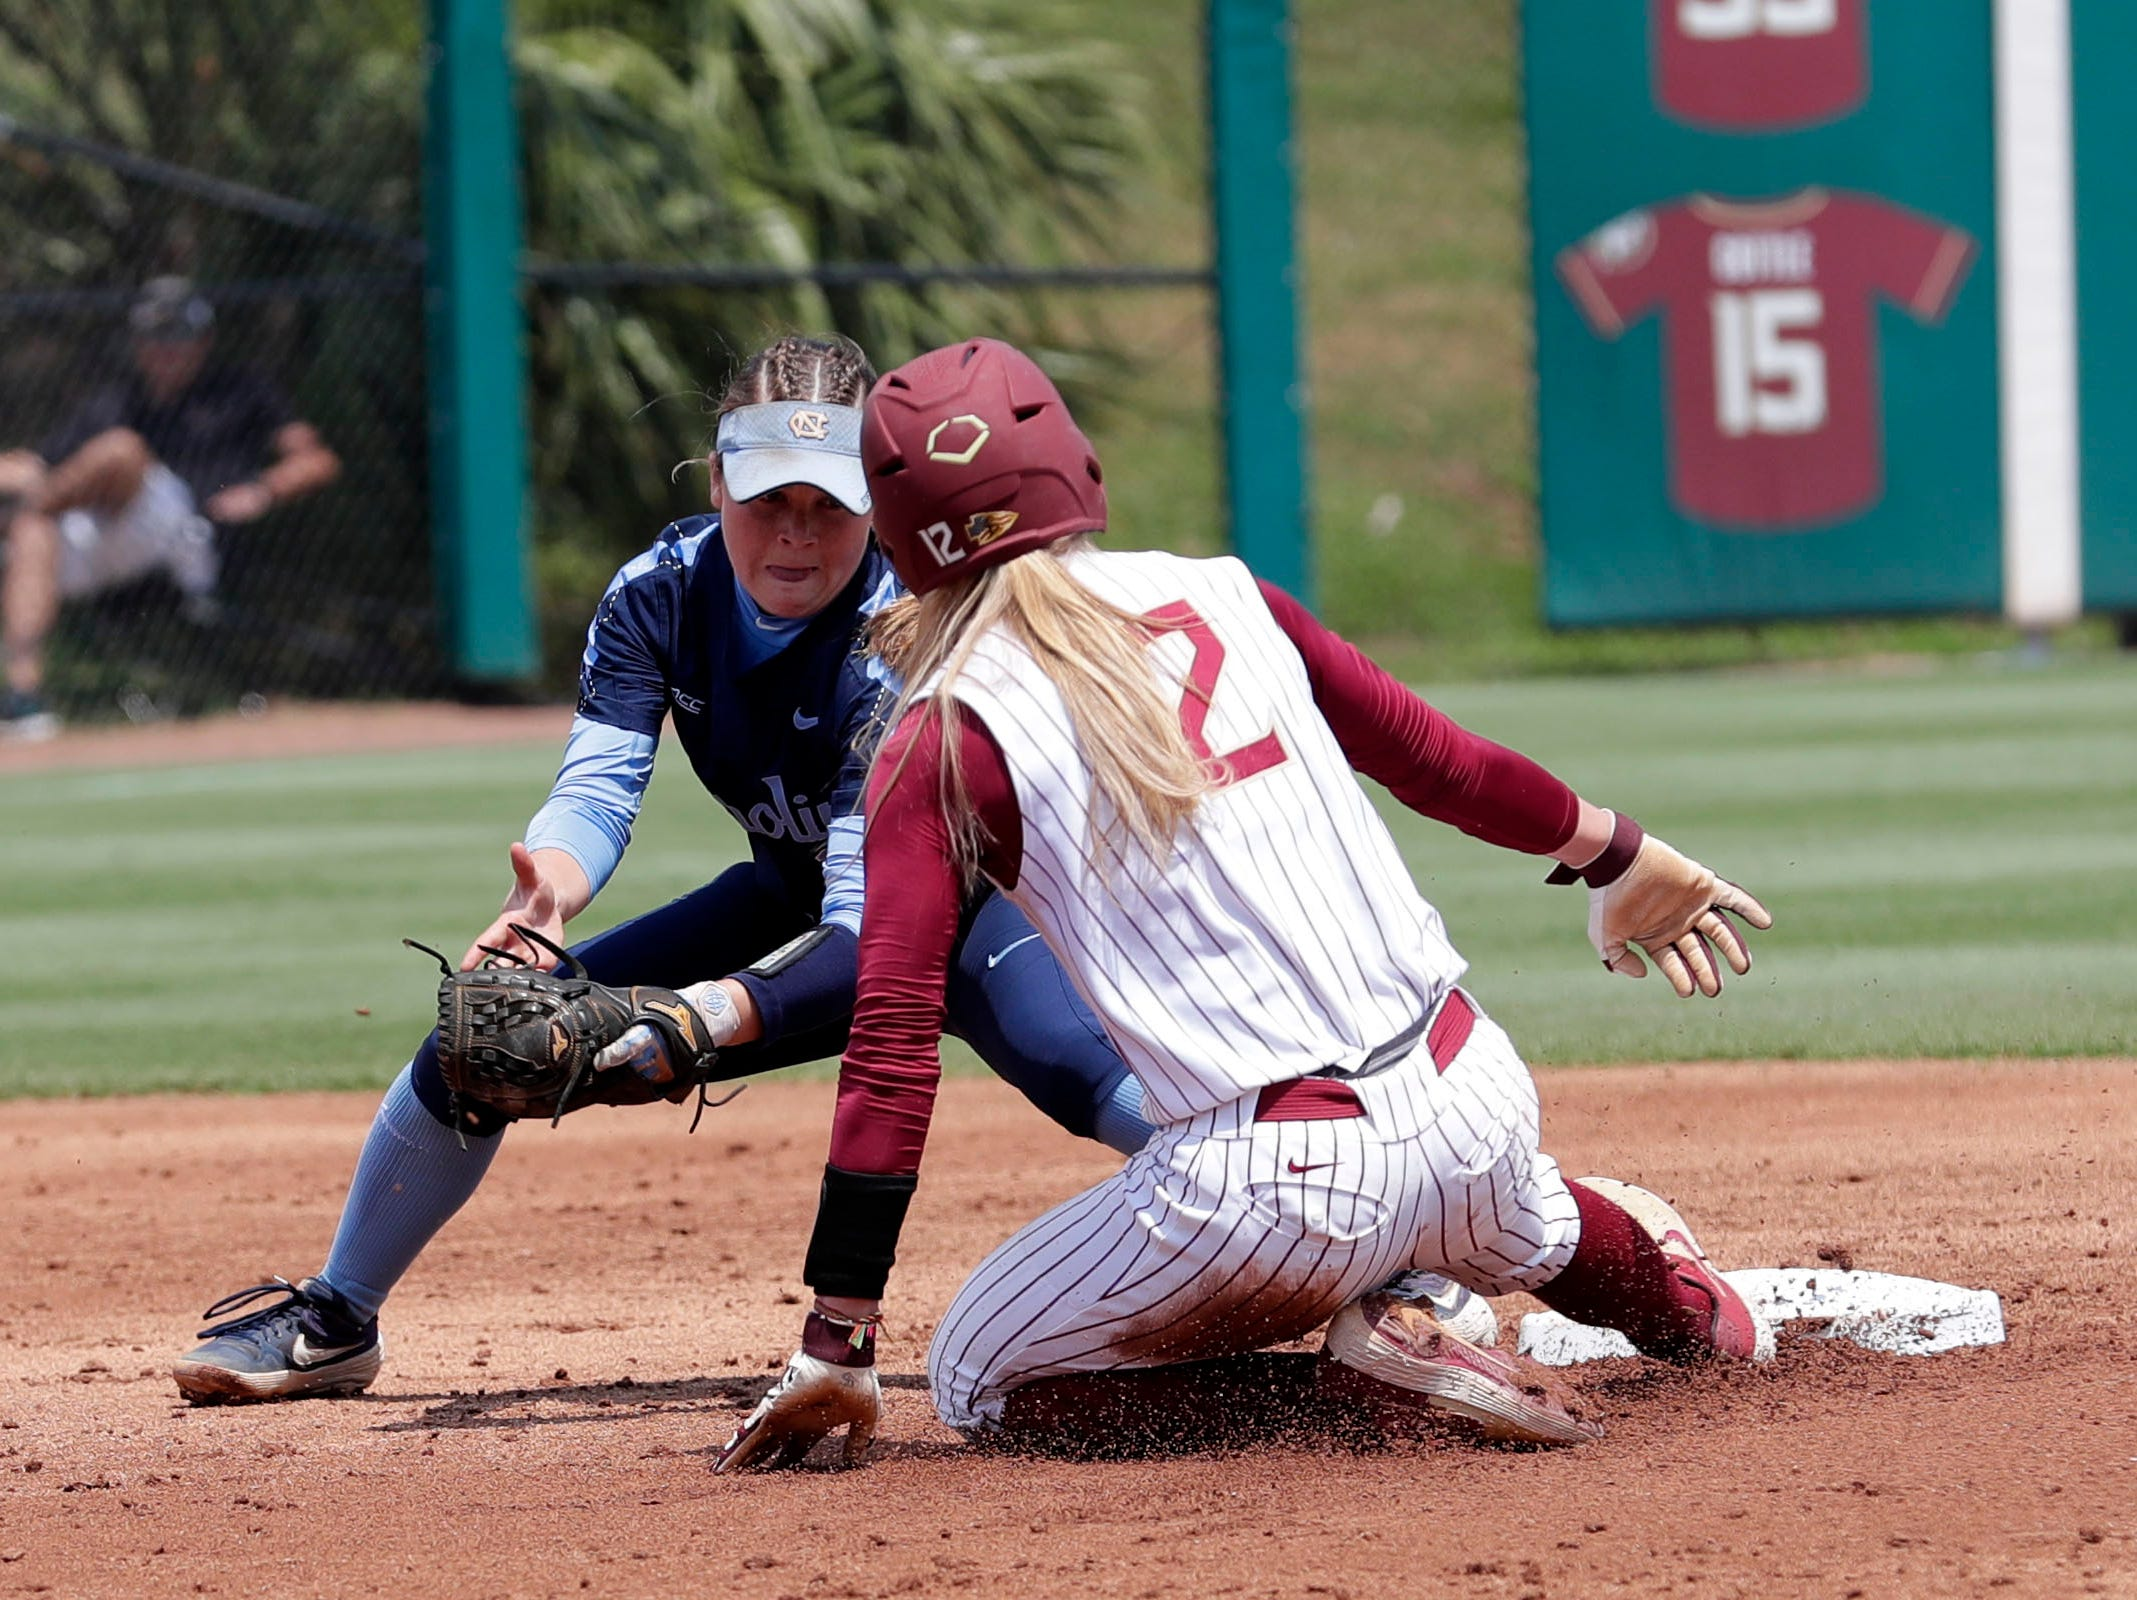 Florida State Seminoles infielder Carsyn Gordon (12) steals second base. The Florida State Seminoles host the UNC Tar Heels for the ACC Softball Tournament finals Saturday, May 11, 2019.